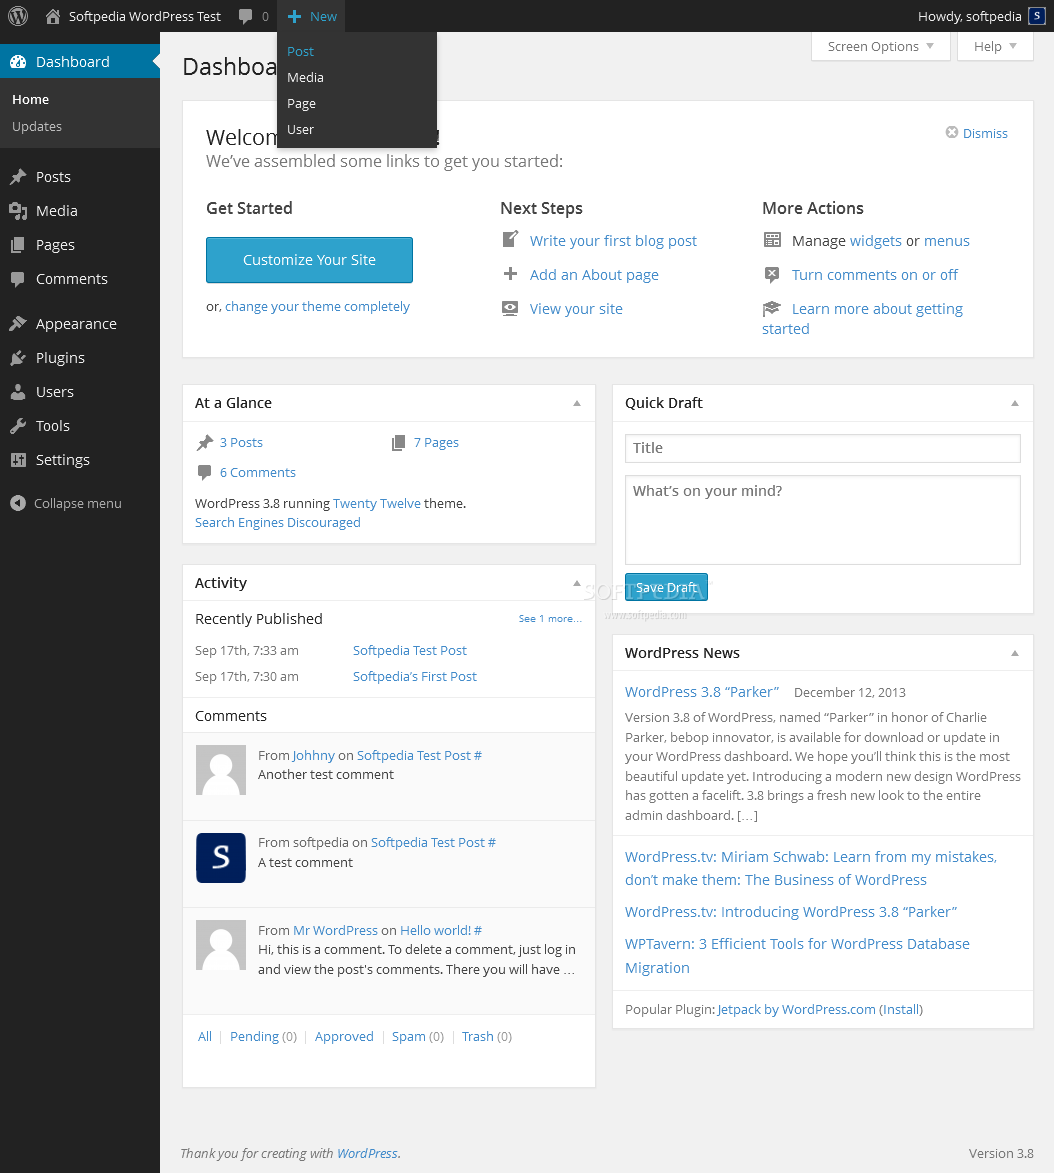 WordPress - WordPress comes with a powerful administration panel